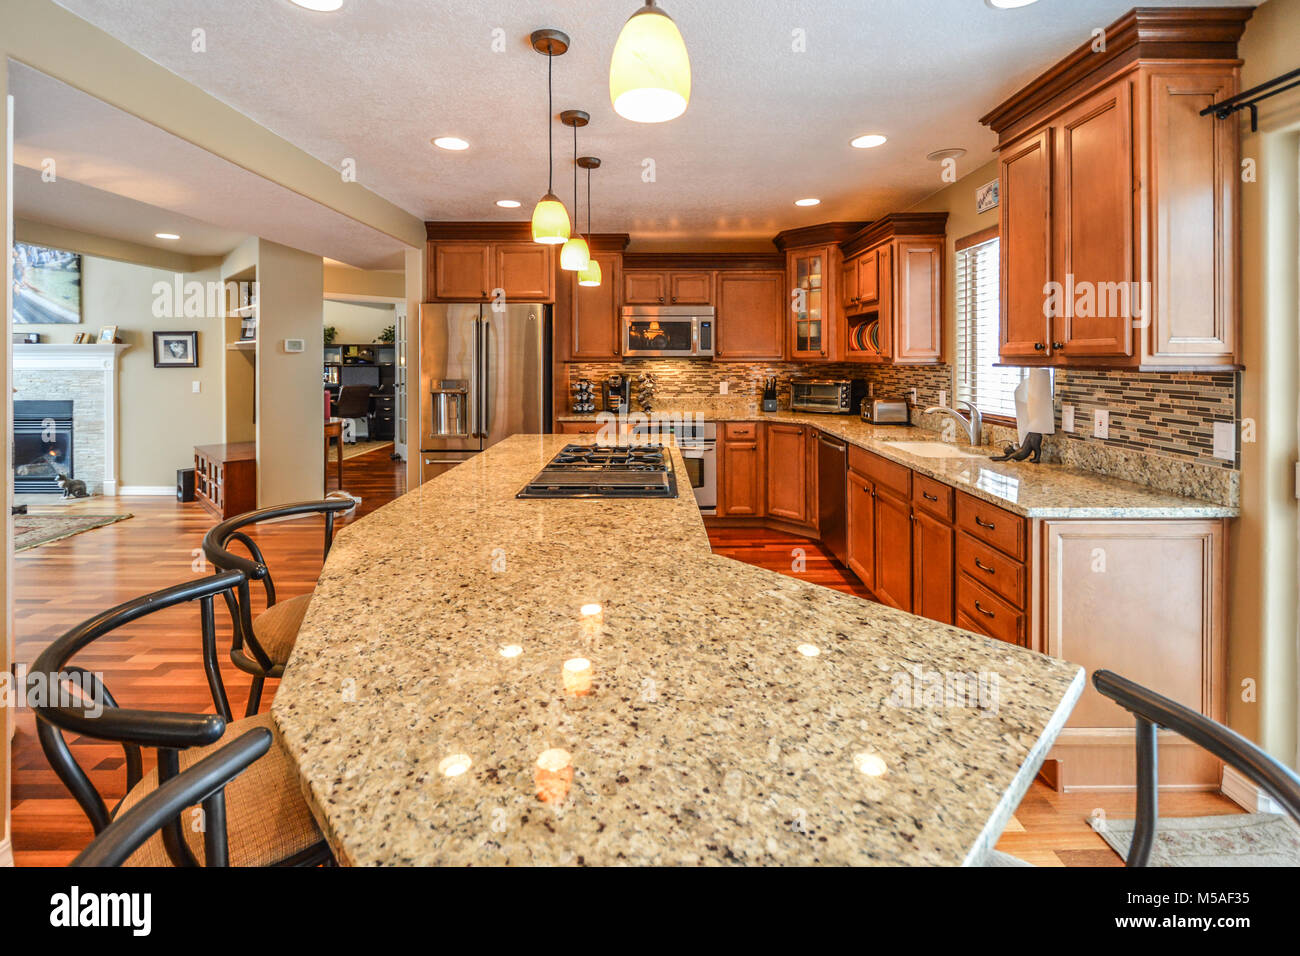 Kitchen Counter And Stools Spacious Upscale Kitchen In A Luxury Home With Large Granite Slab